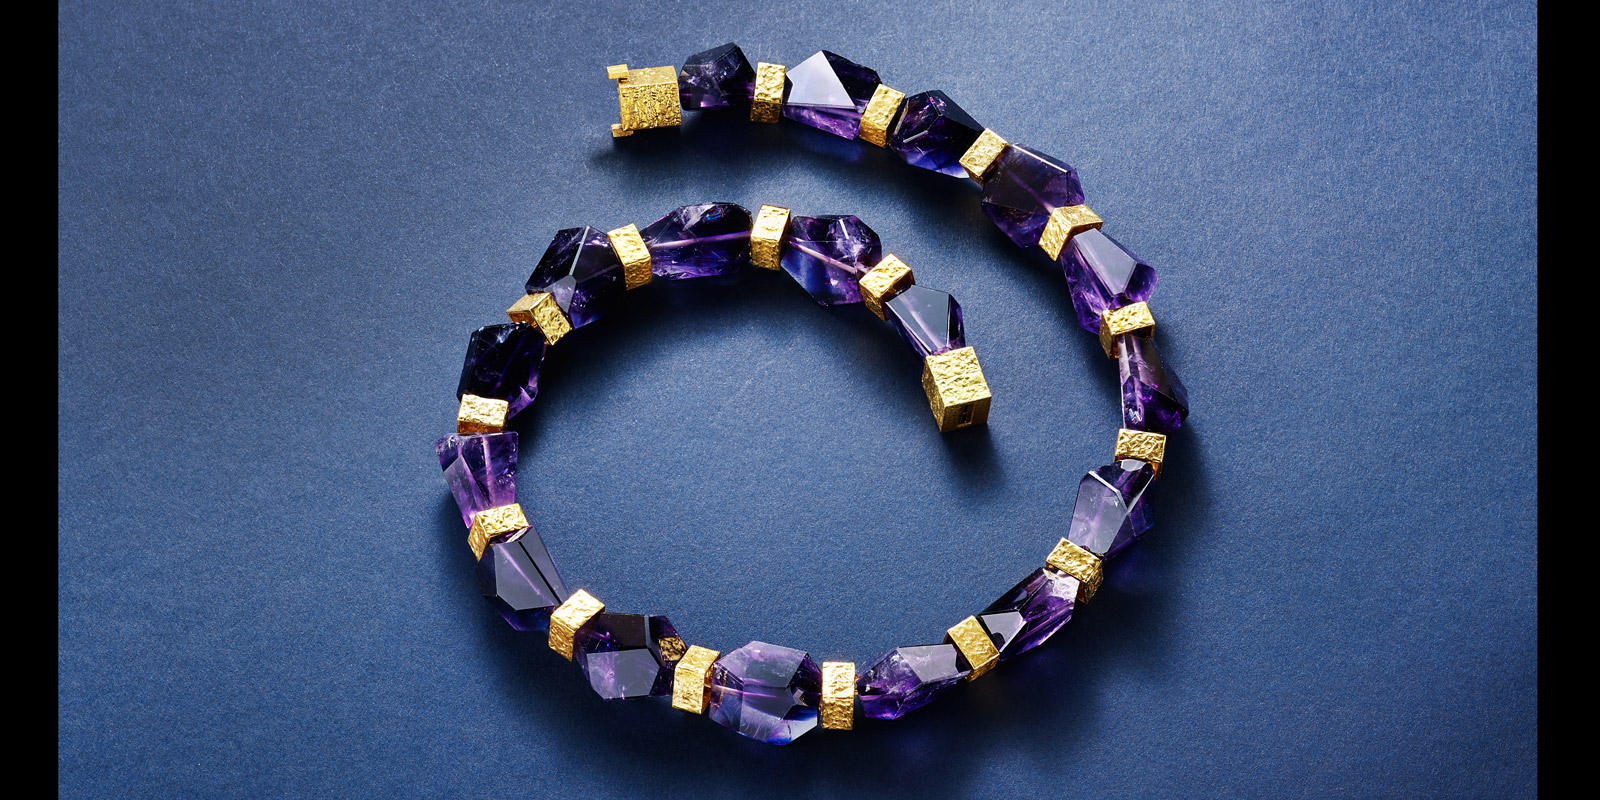 P necklace. 22 karat gold and Amethyst